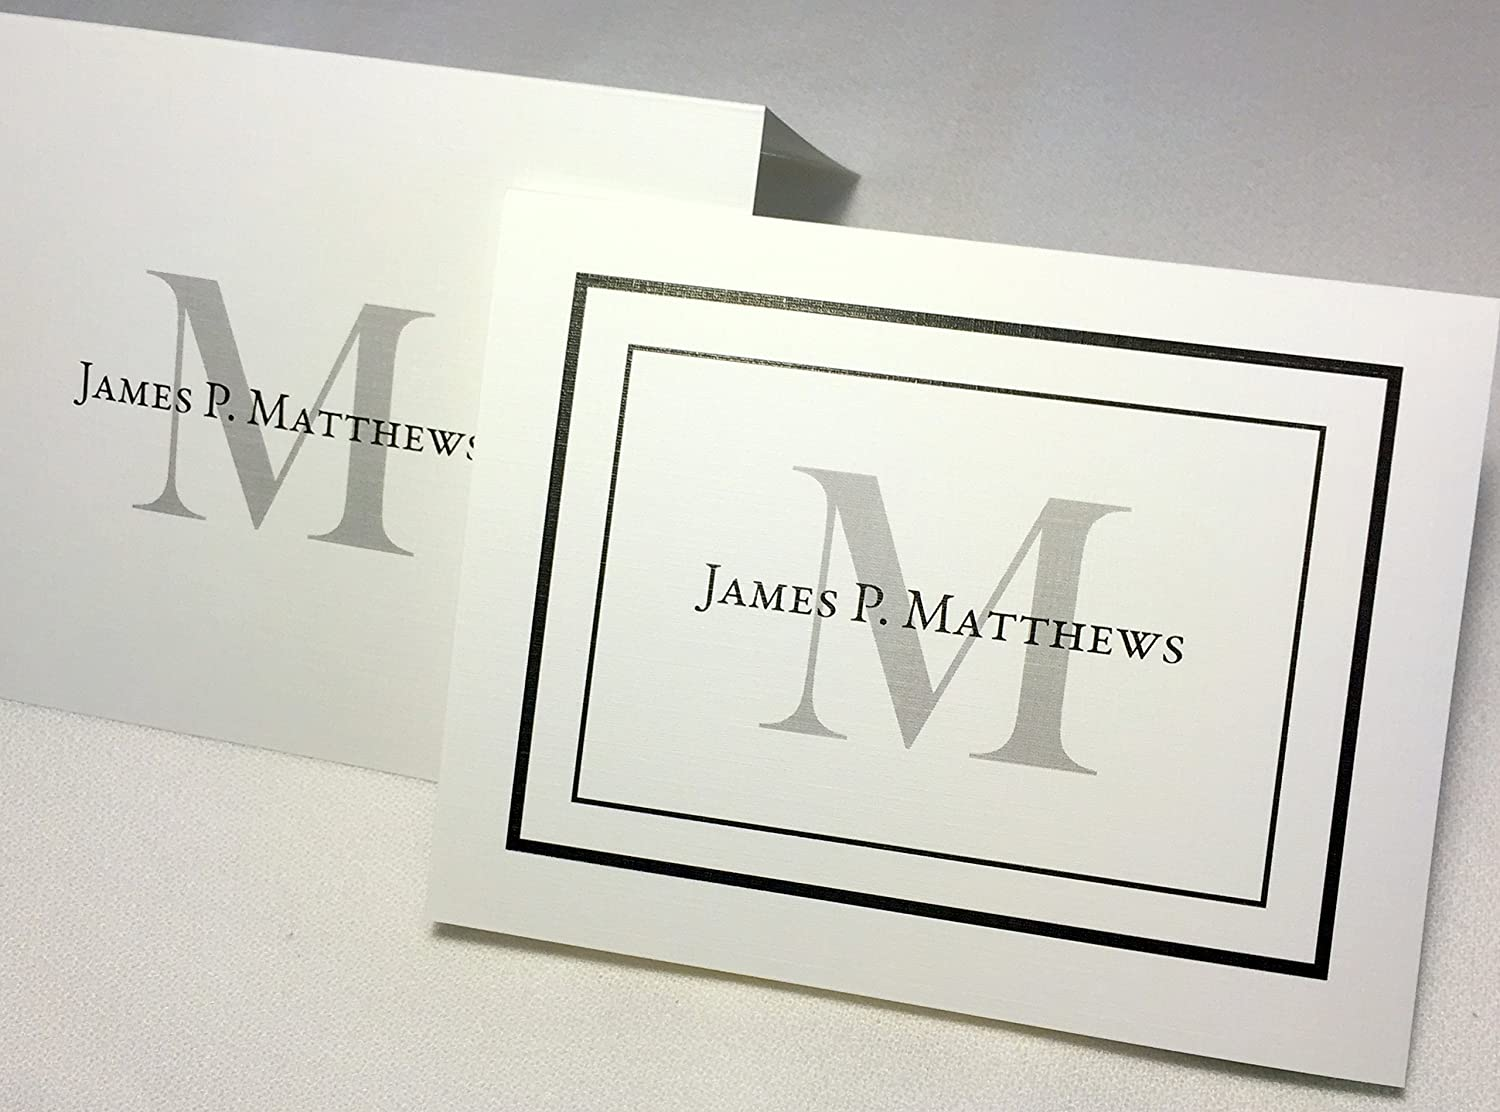 50 Personalized Note Cards With Envelopes Add An Initial And Full Name Choose With Border Or